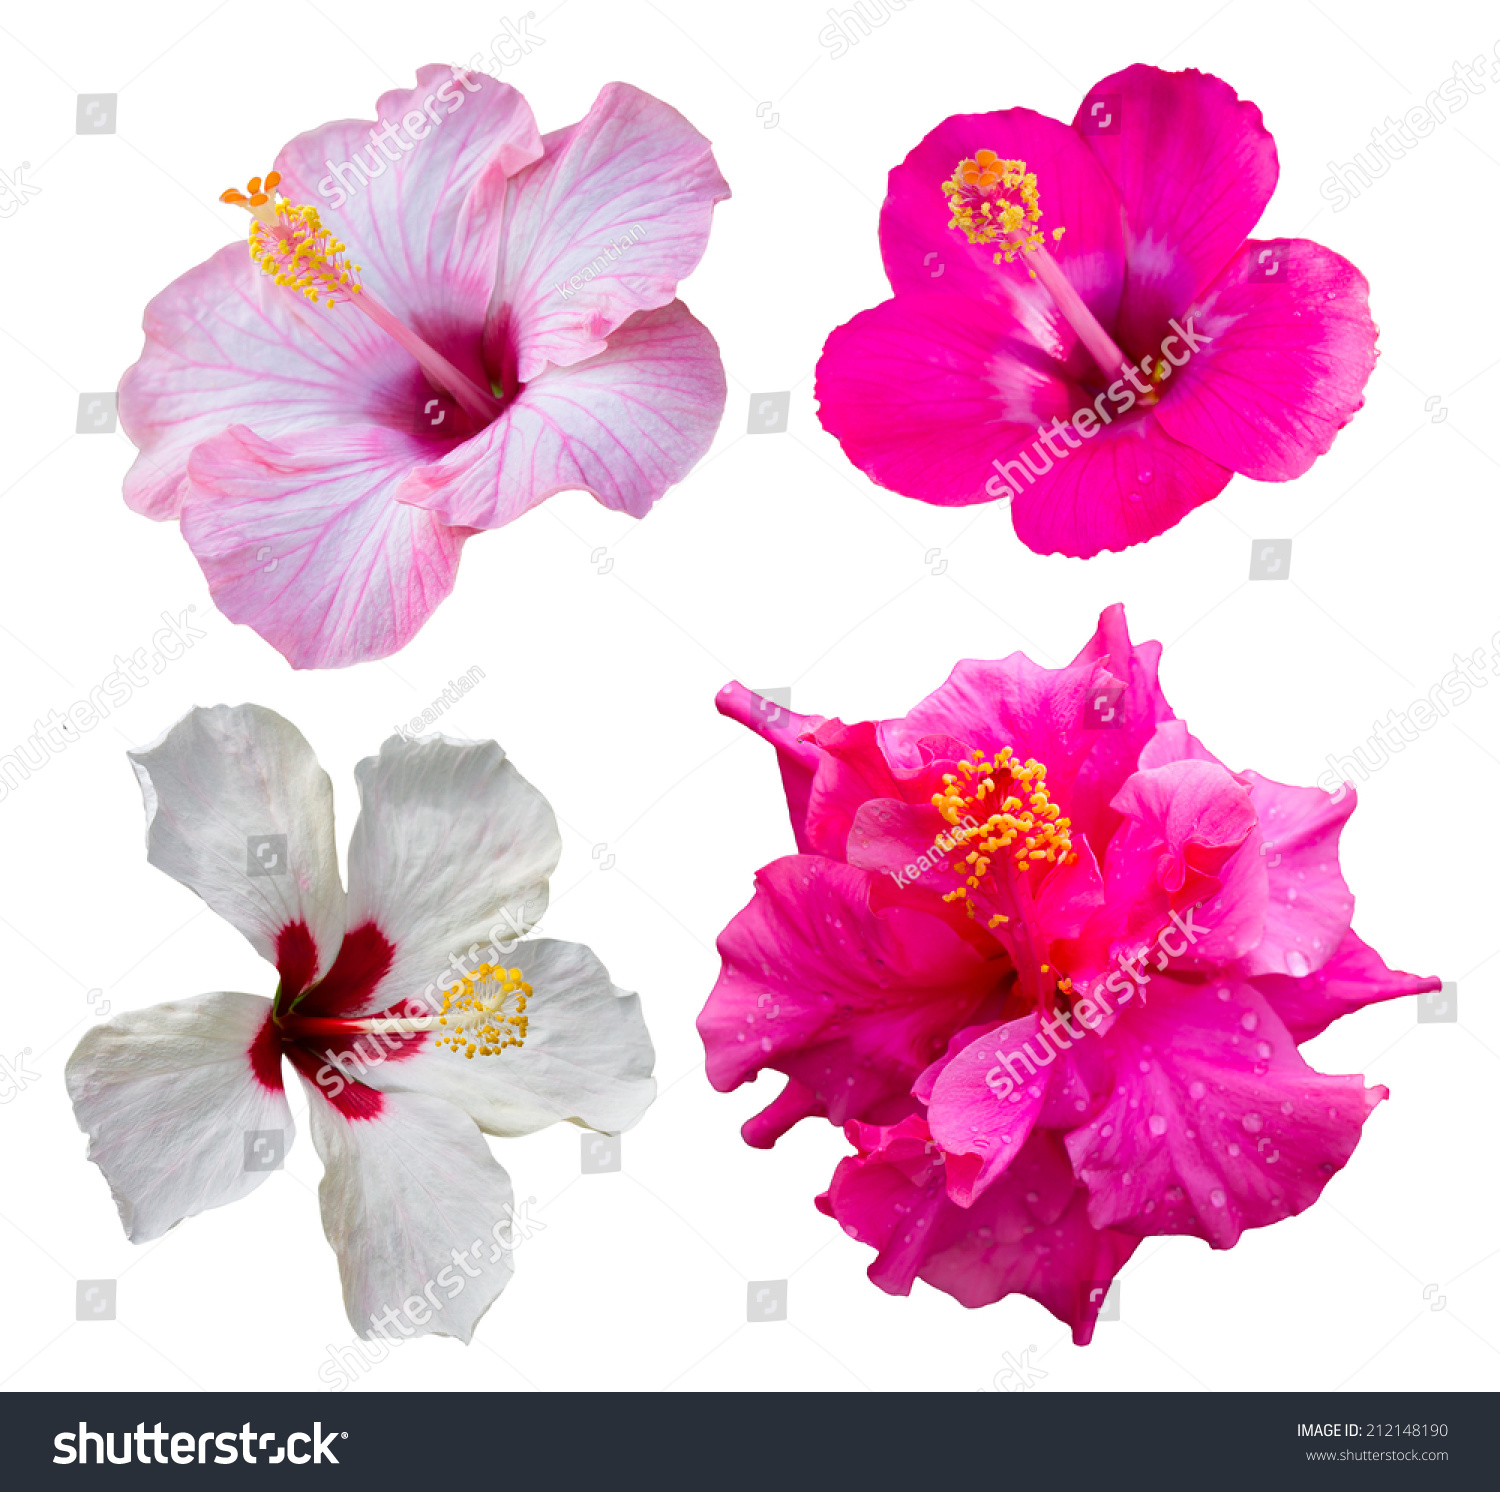 Isolates four hibiscus flowers different colors stock for What makes flowers different colors